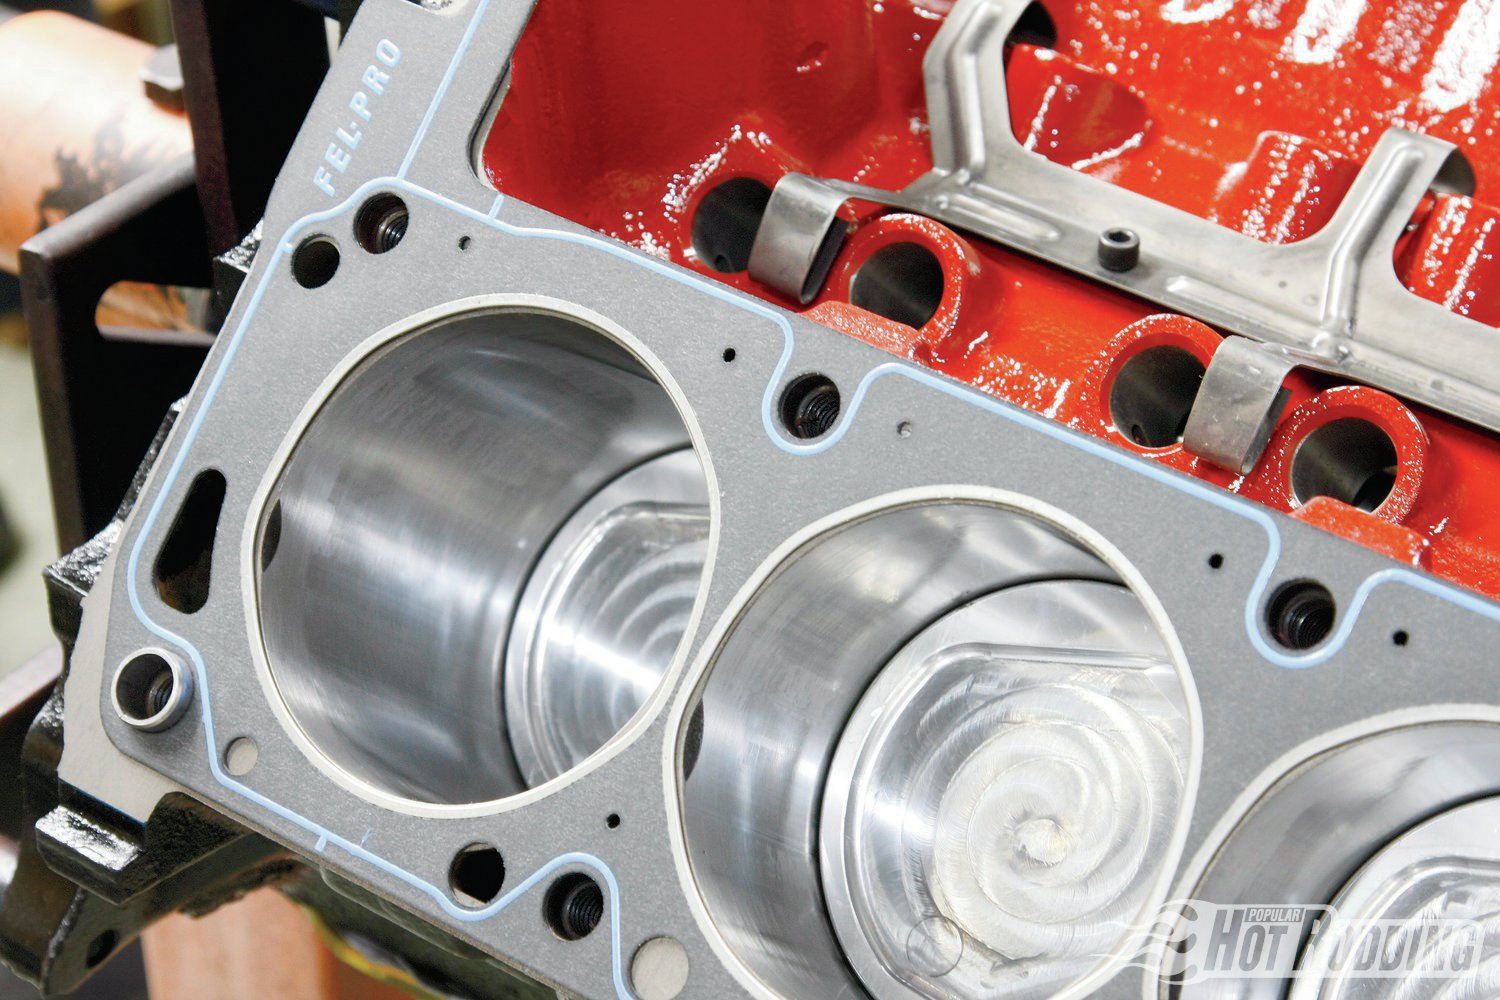 5. Per usual, we're using Fel-Pro head gaskets to ensure an excellent seal to the block. Paired with the 16cc dished Scat forged pistons that sit .010 below the deck, we'll have .060 total combustion chamber volume with the .050 Fel-Pro gaskets.